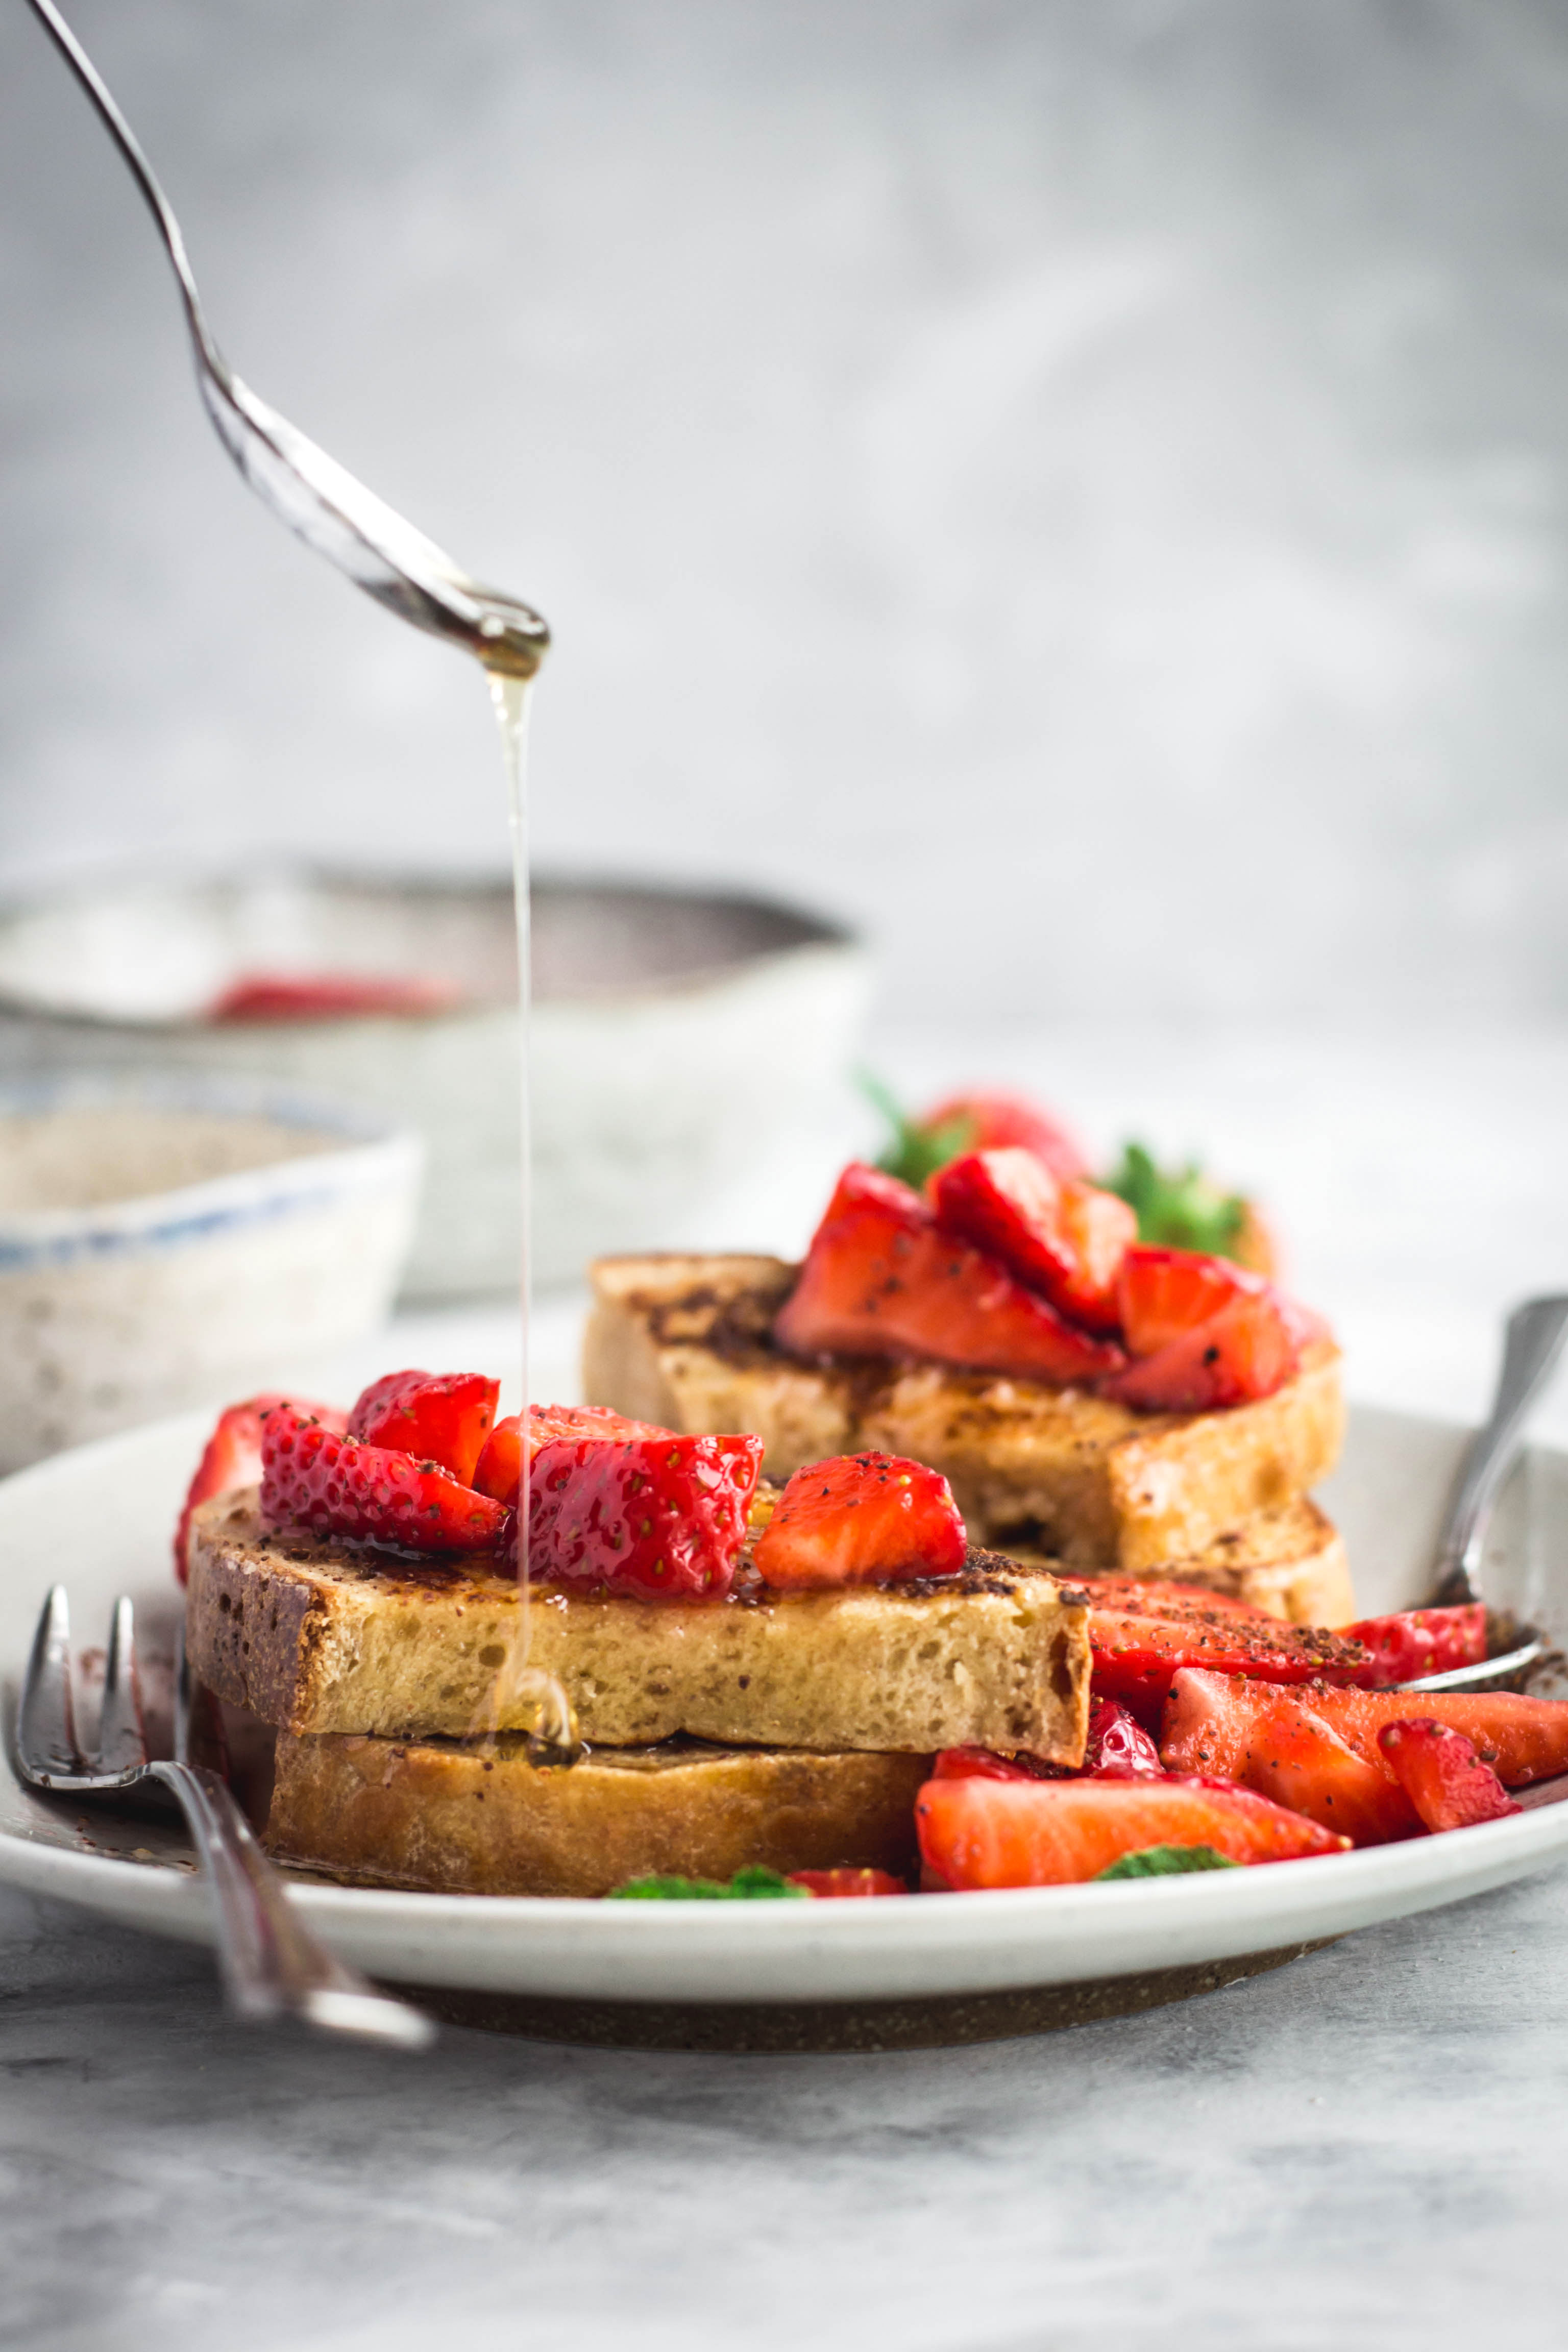 How to master the art of French toast: recipe and tips